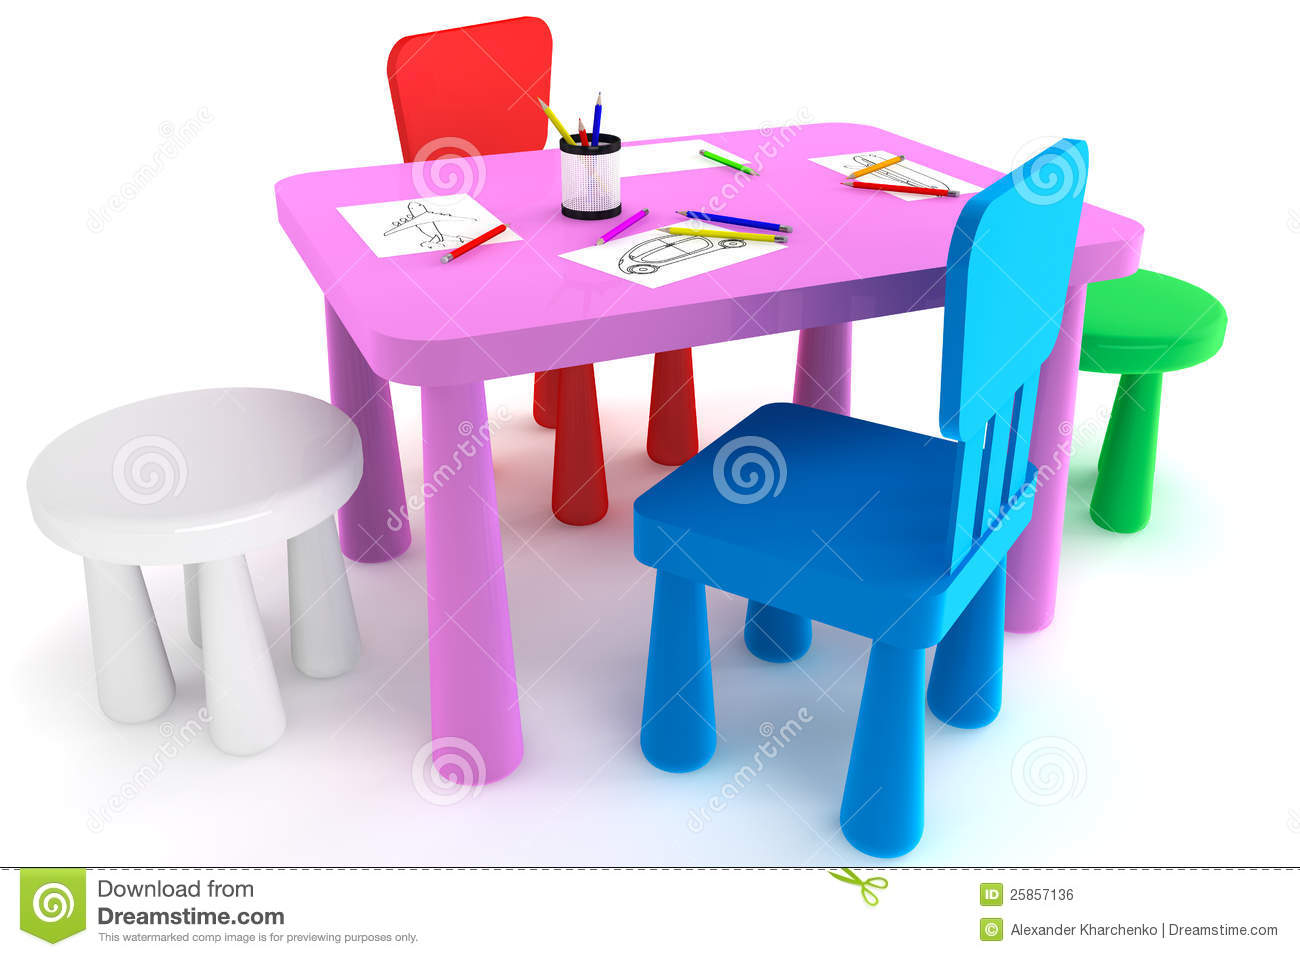 kids plastic table and chairs recliner chair parts colorful kid royalty free stock